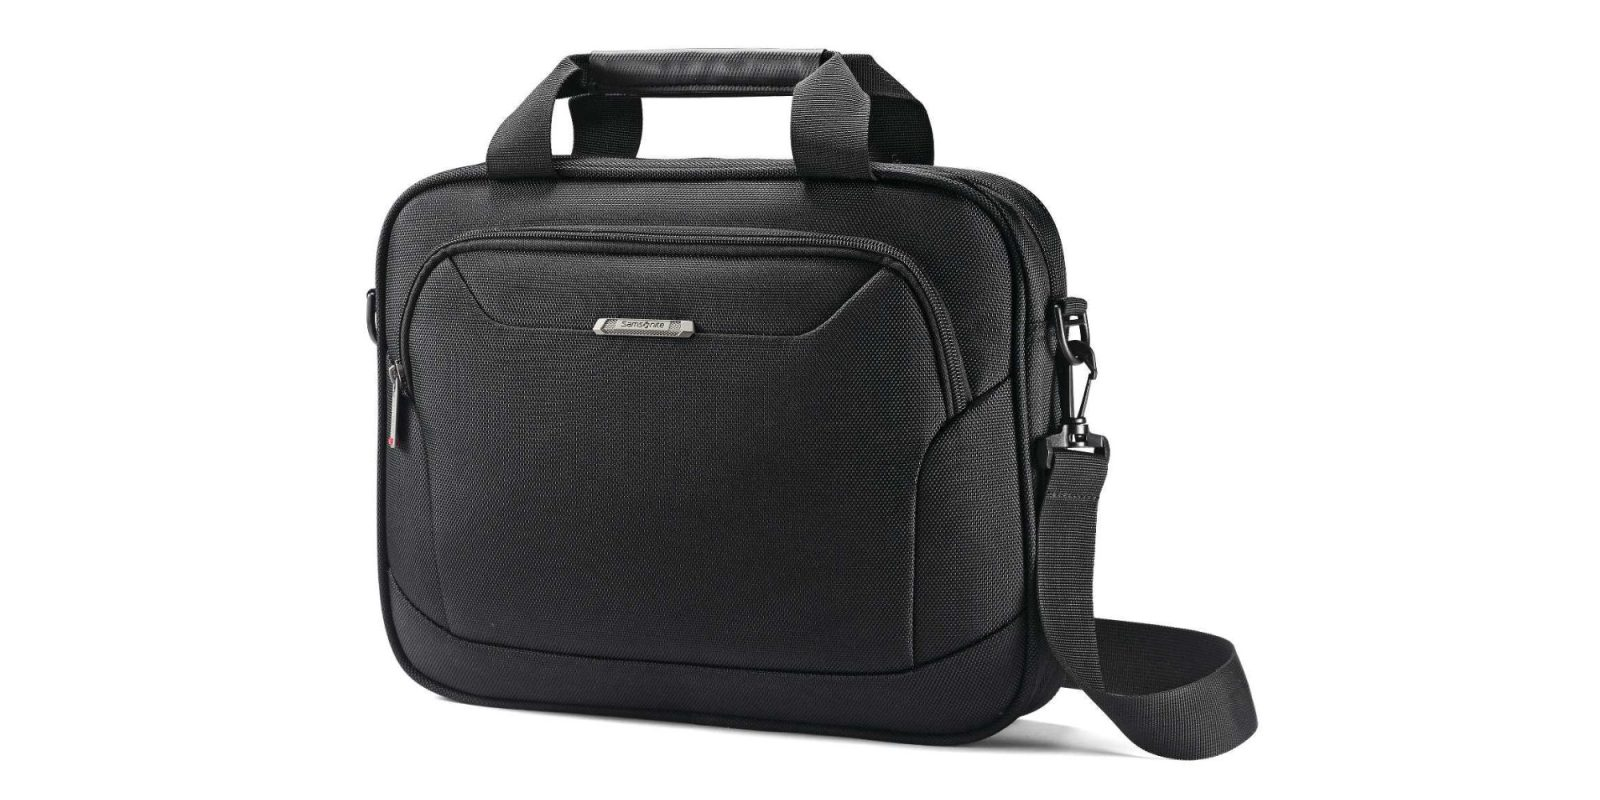 Samsonite's Xenon Bag hauls a 13-inch MacBook and iPad, more from $17.50